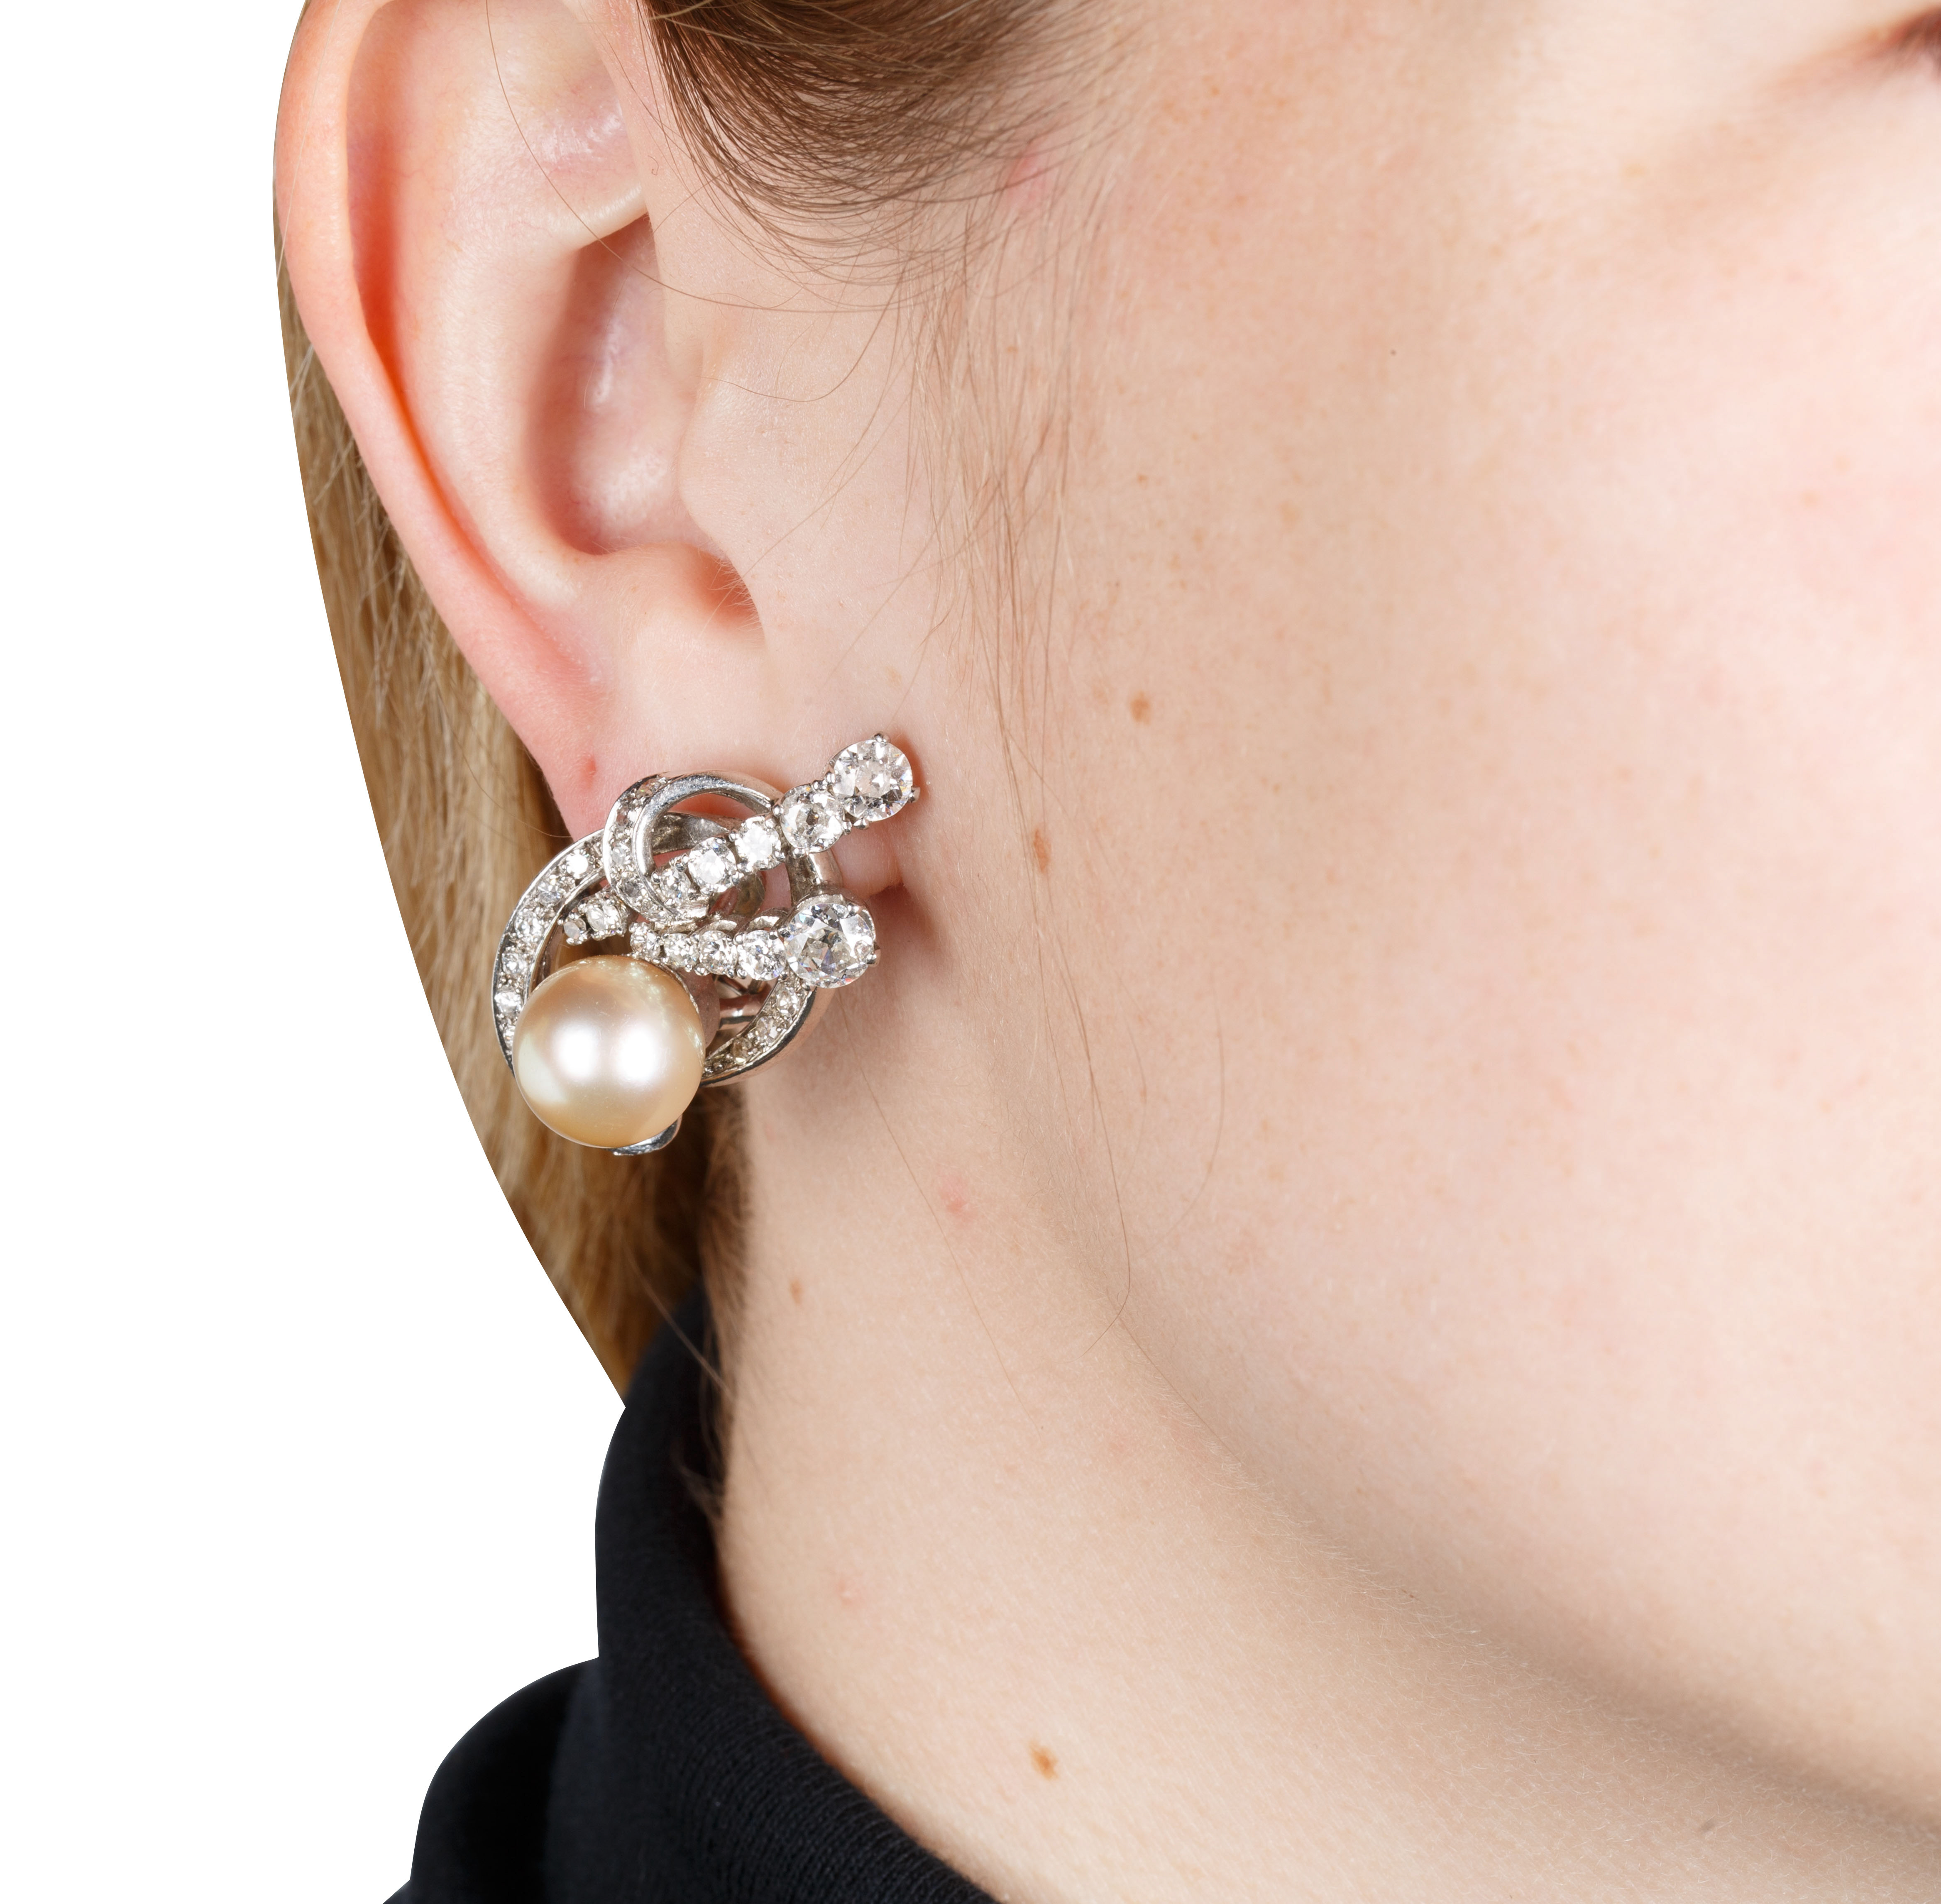 PAIR OF CULTURED YELLOW PEARL, DIAMOND AND WHITE GOLD EARRINGS - Image 5 of 5